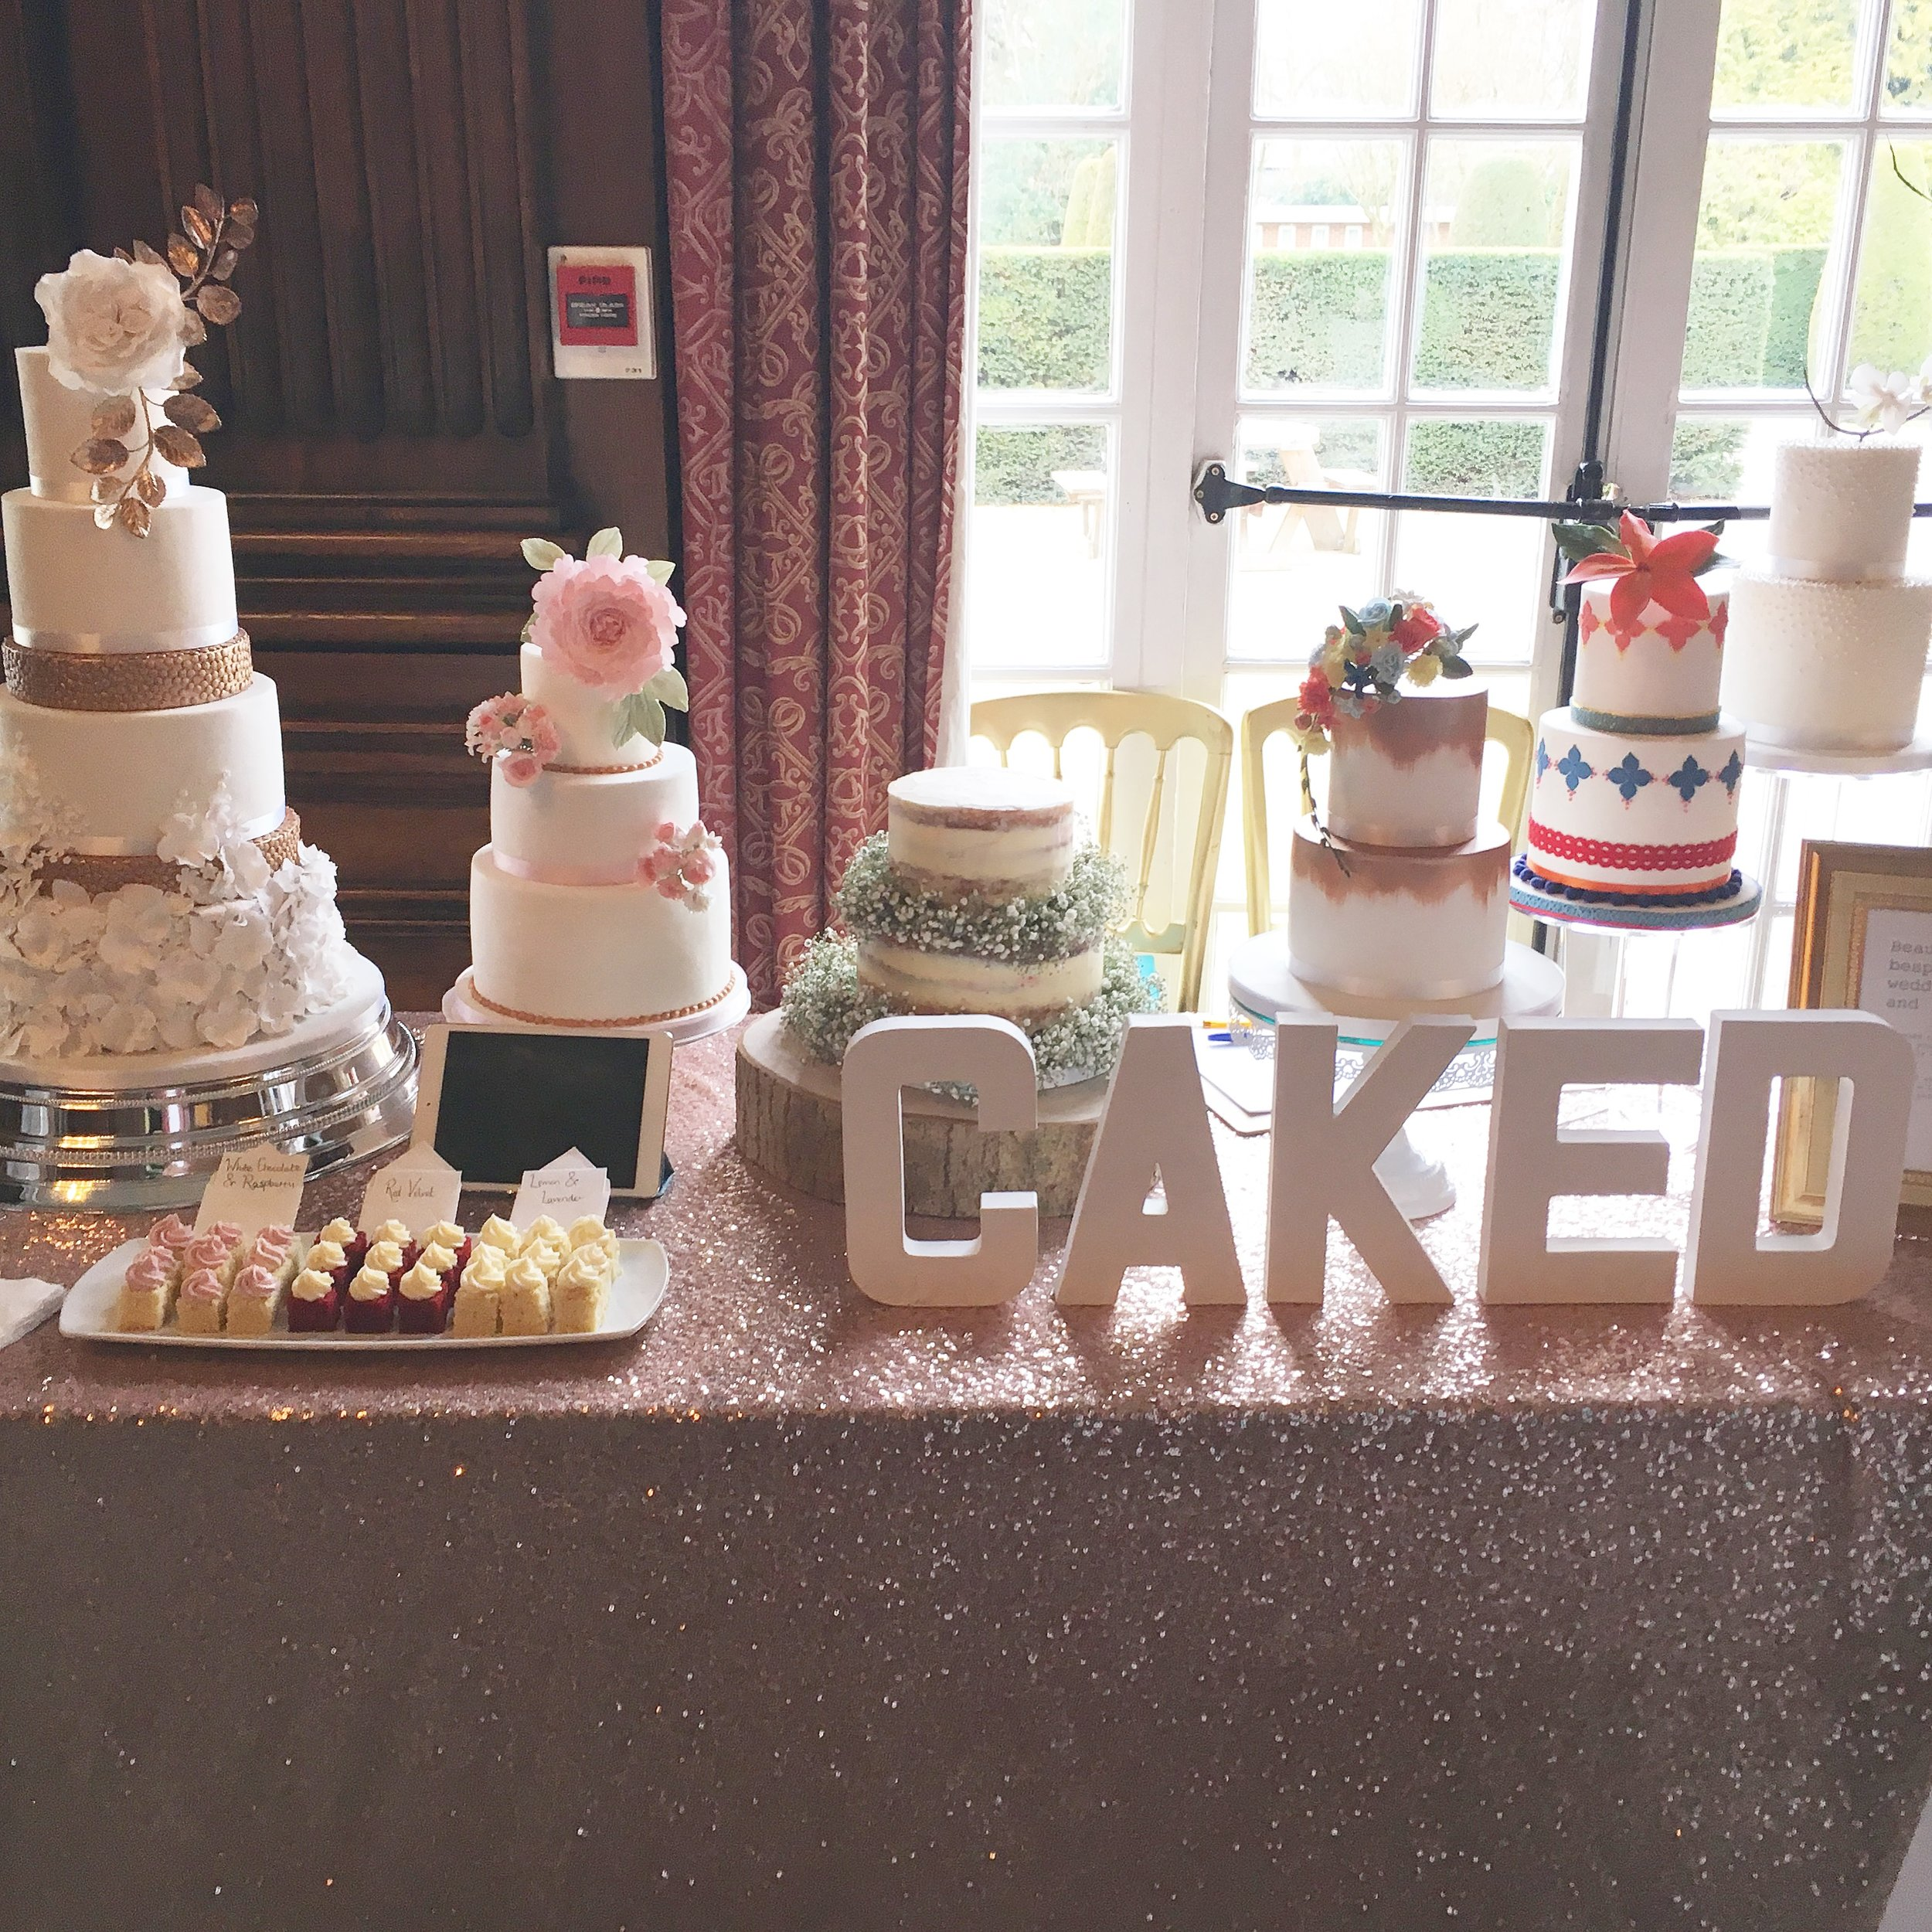 Caked Wedding Fair